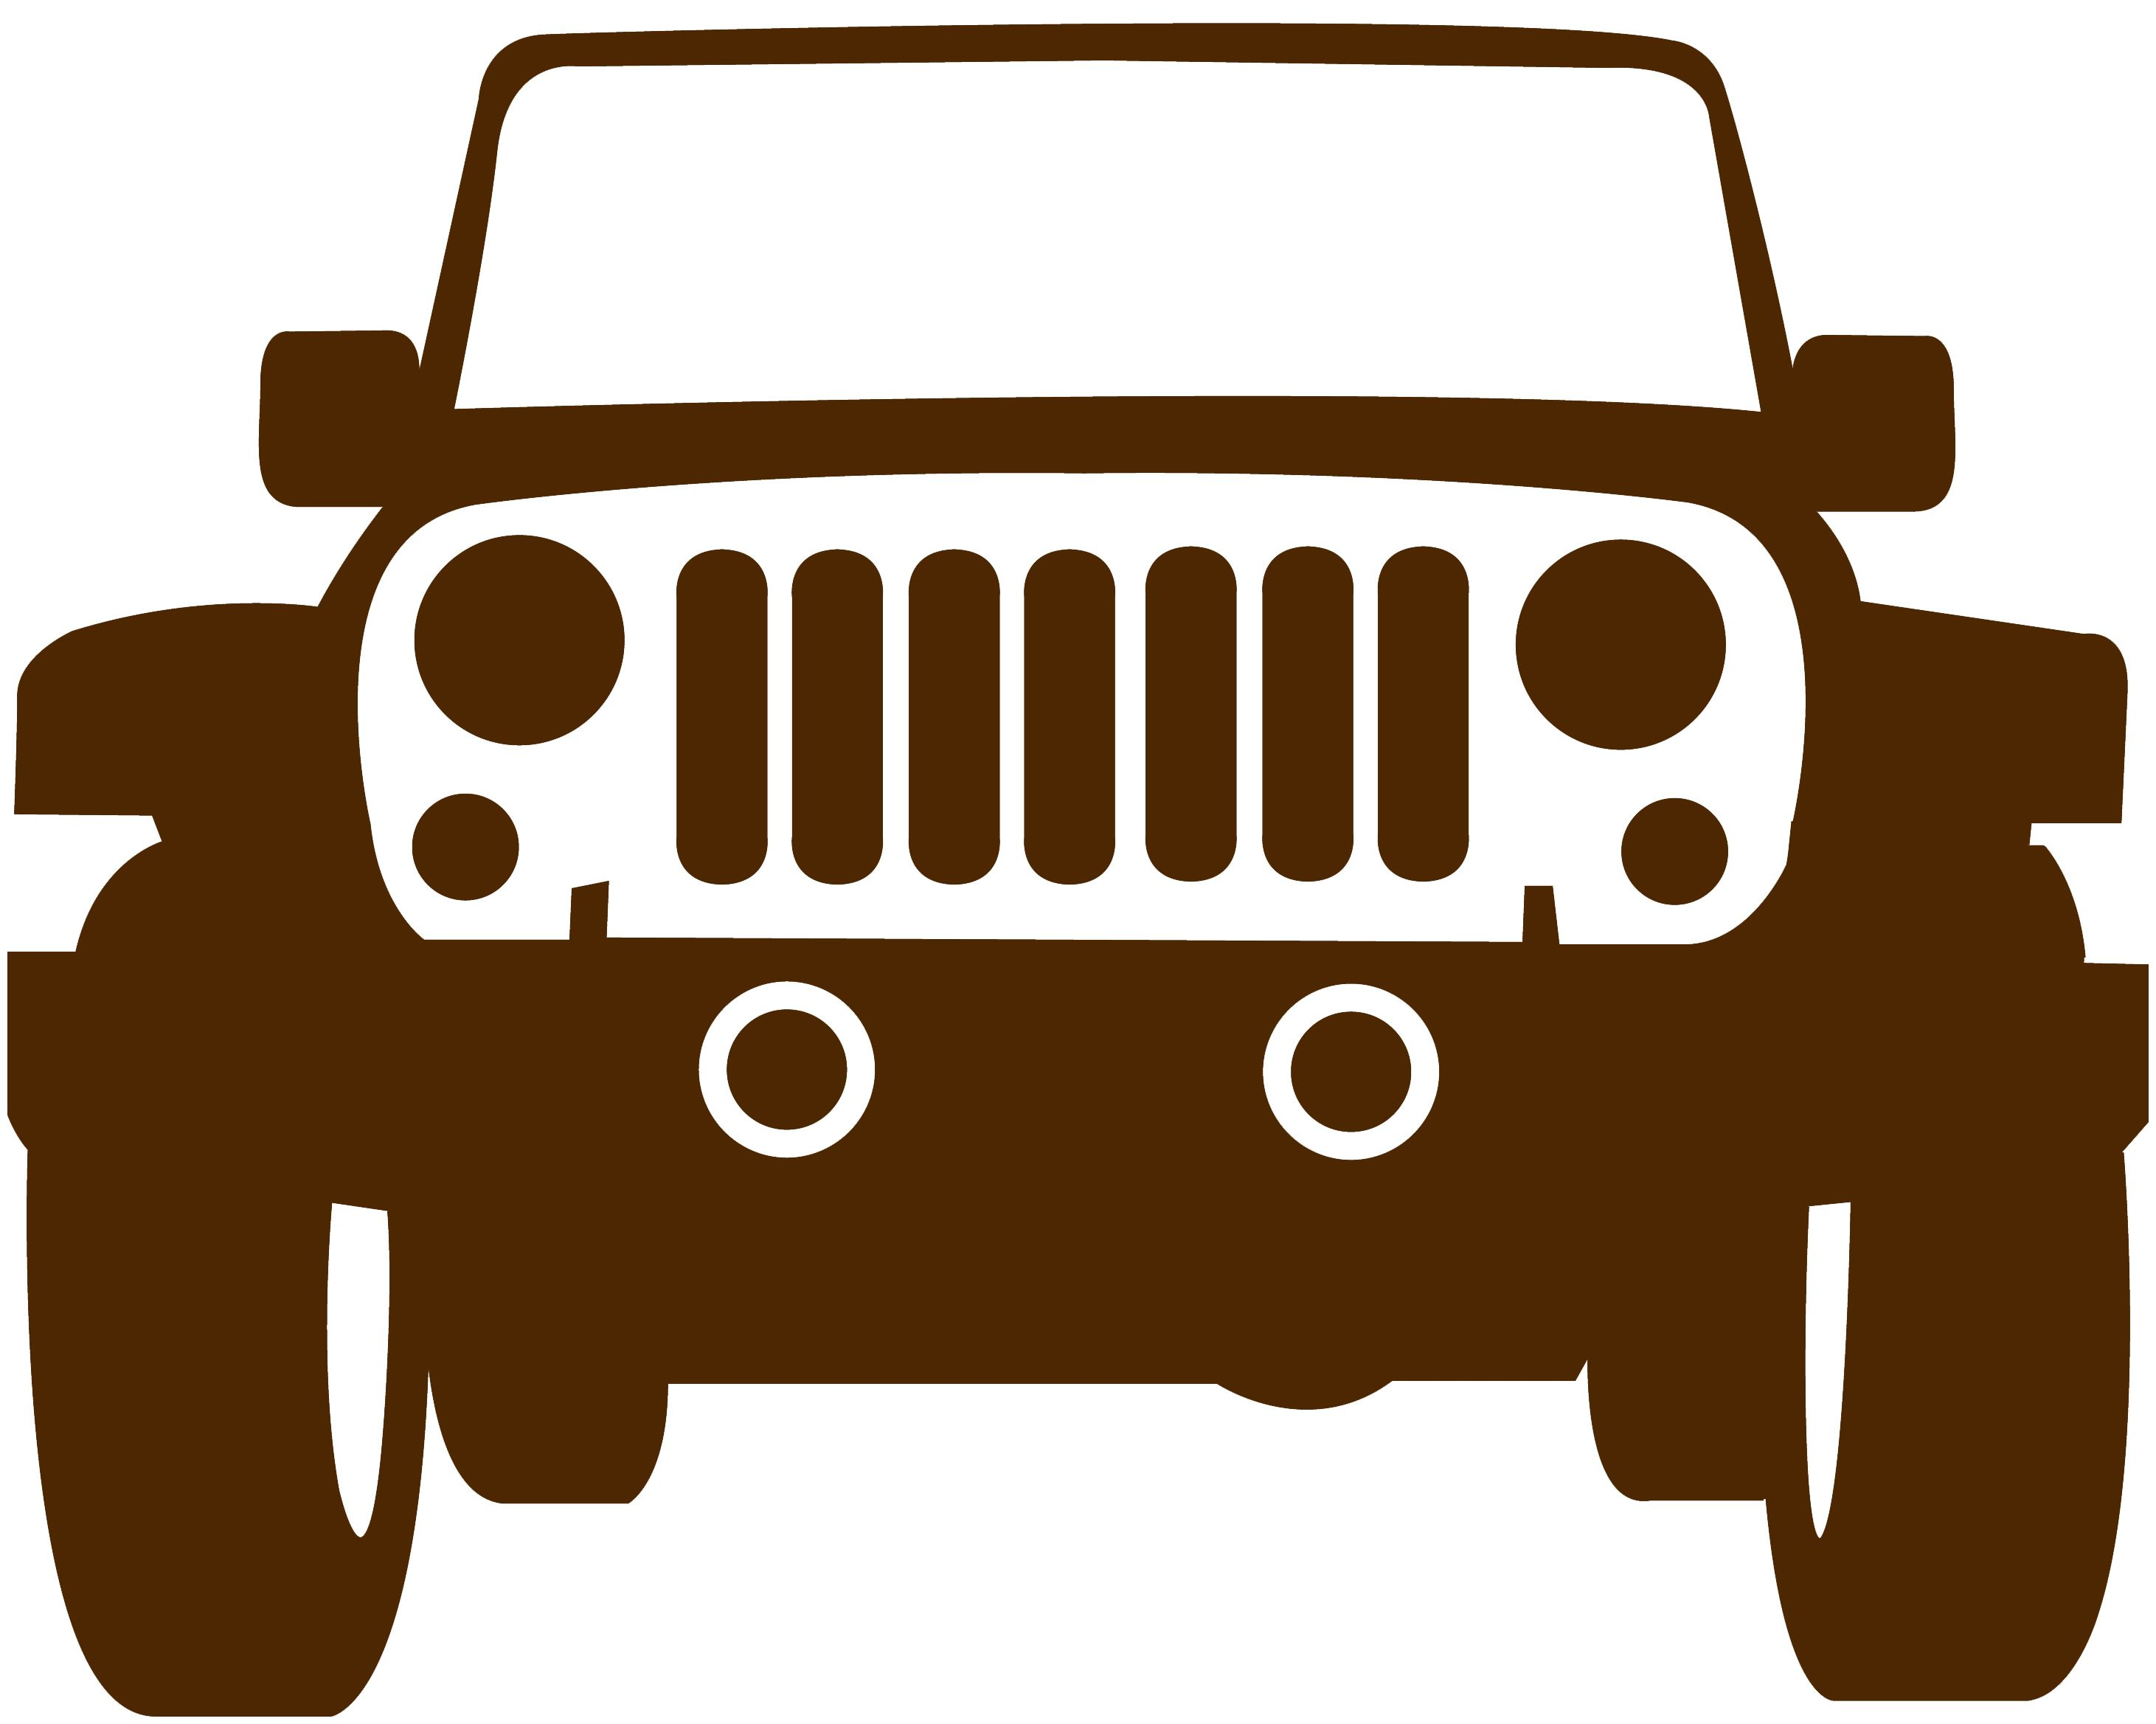 Christmas Jeep Silhouette.Christmas Jeep Silhouette Year Of Clean Water